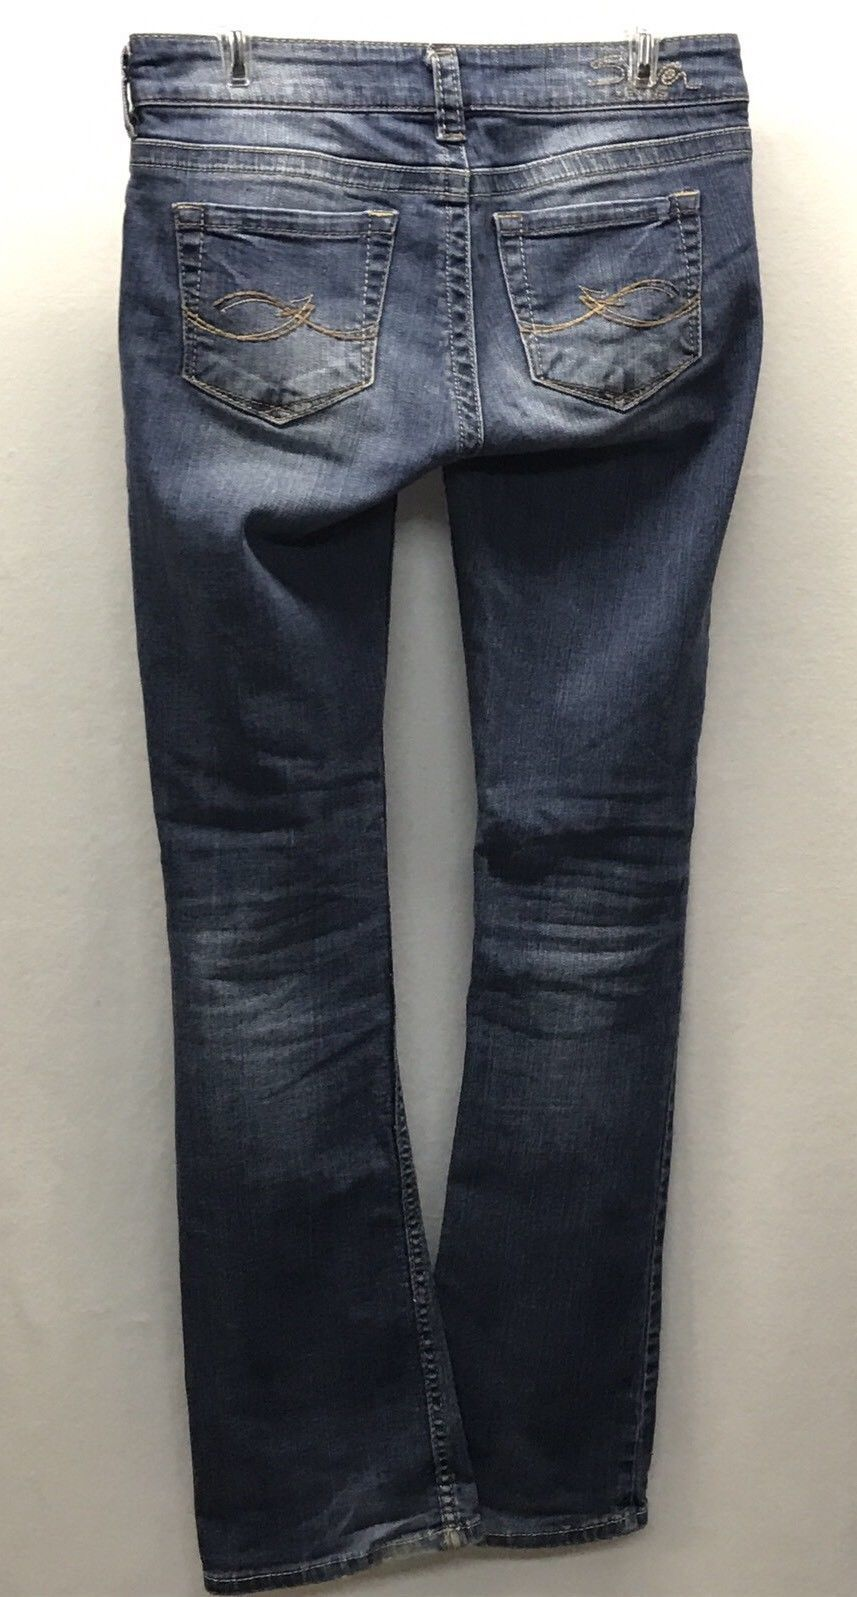 Silver Jeans Kingston Low Rise Boot Cut Tag Size 27 Long Actual 33 in x 32 in